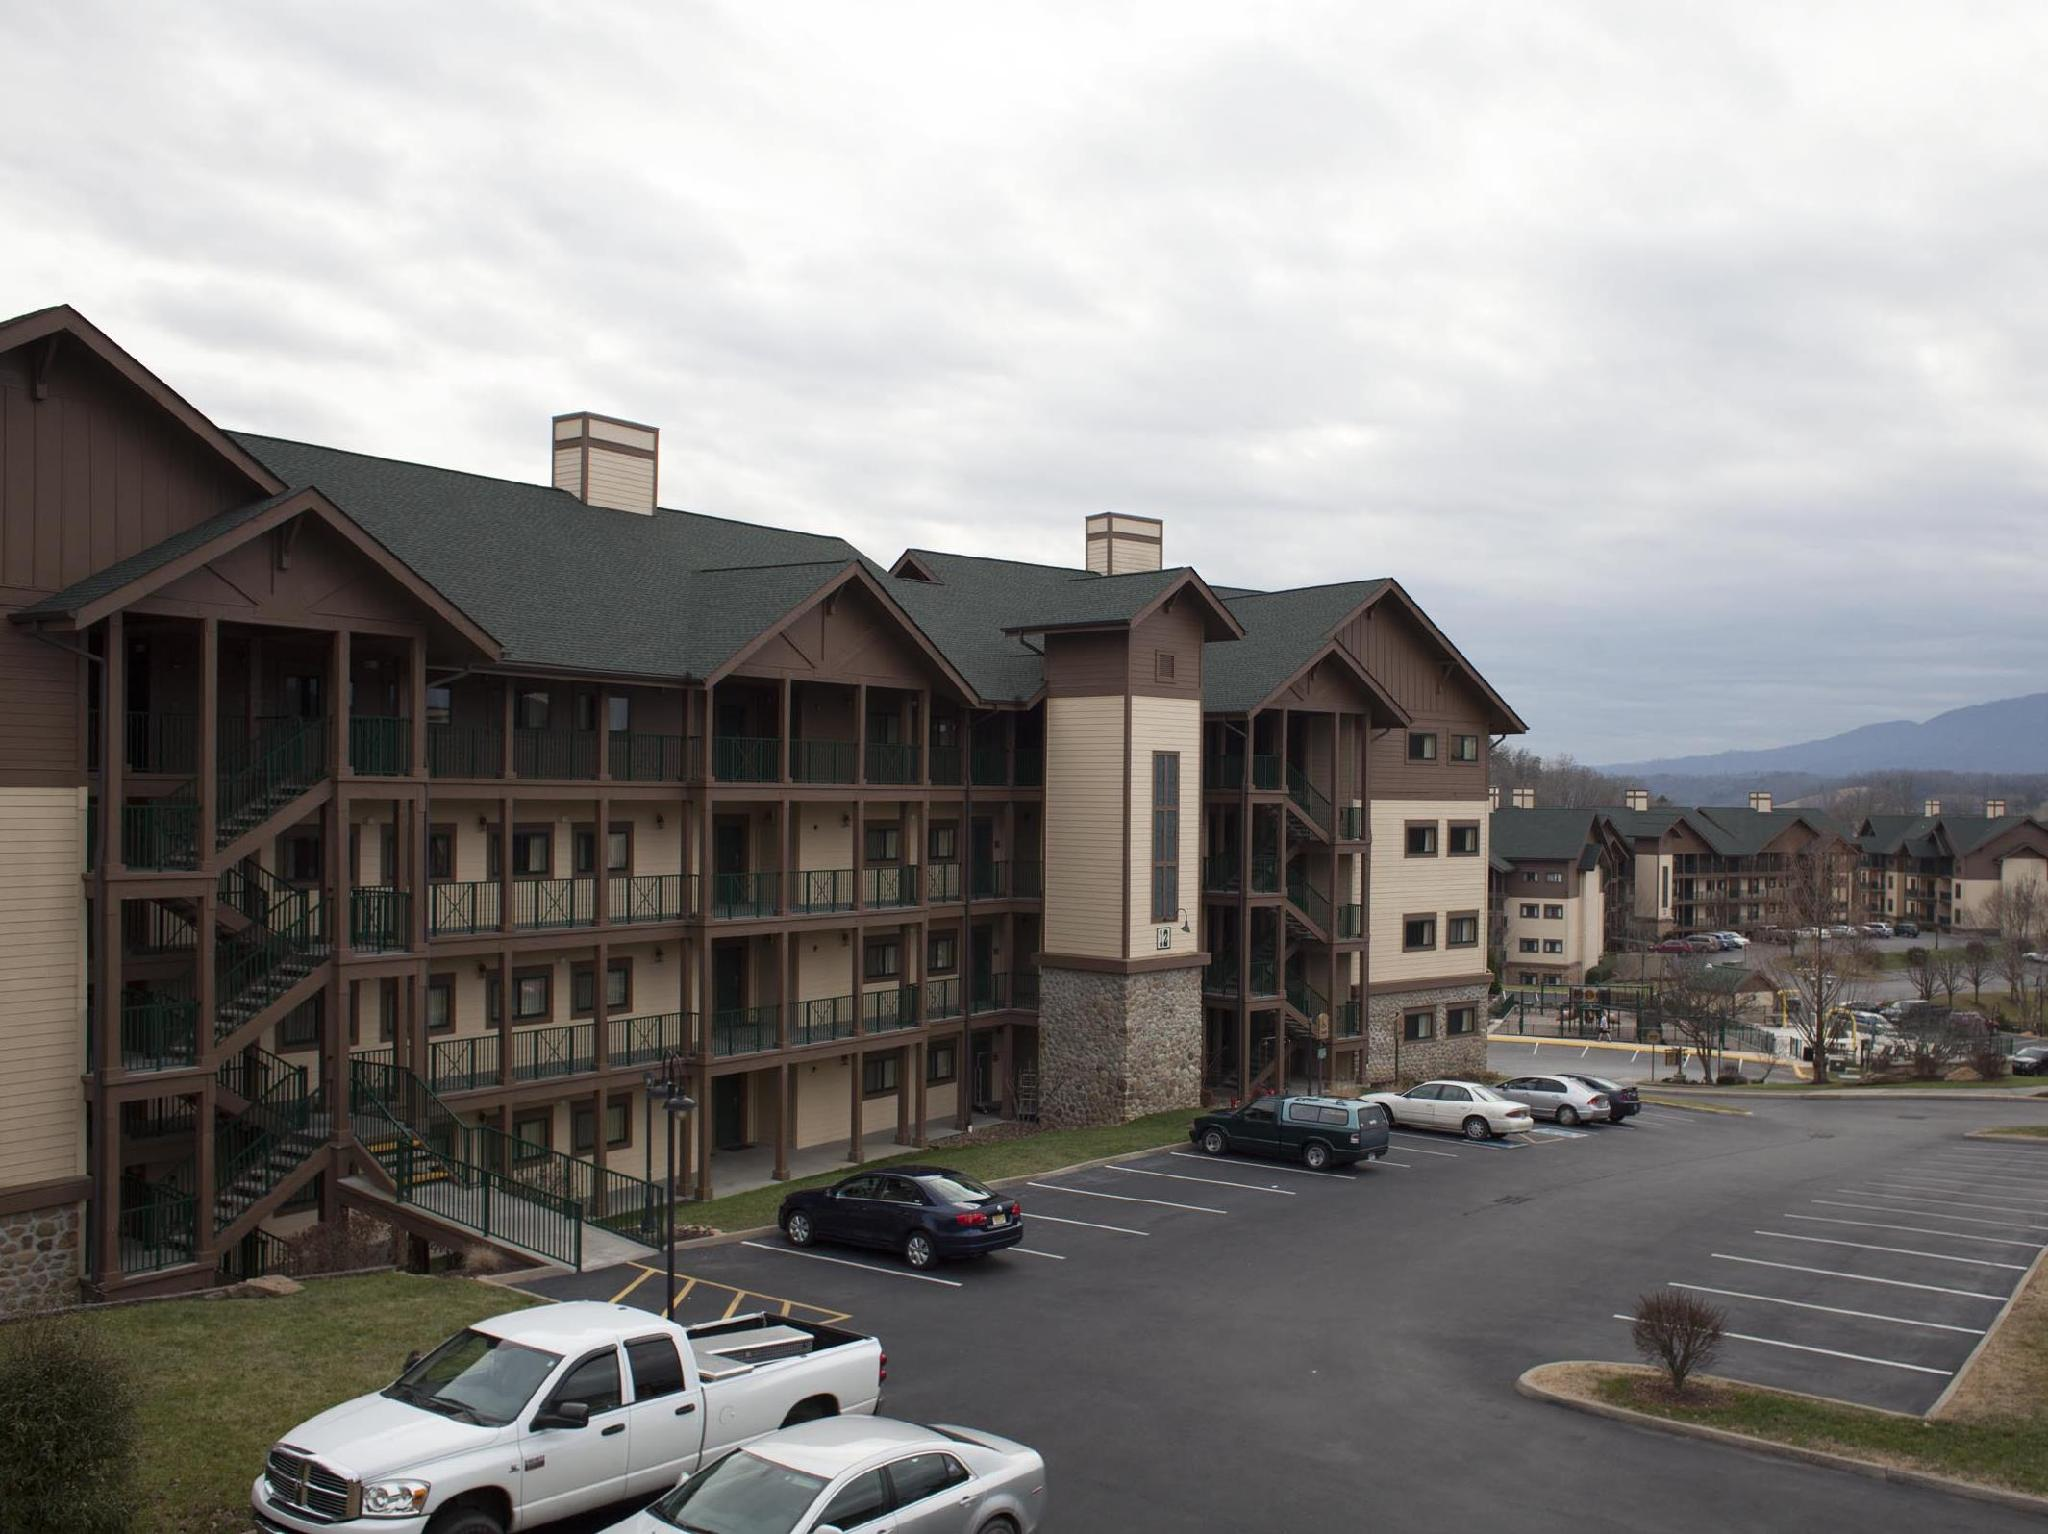 Smoky Mountain Resort